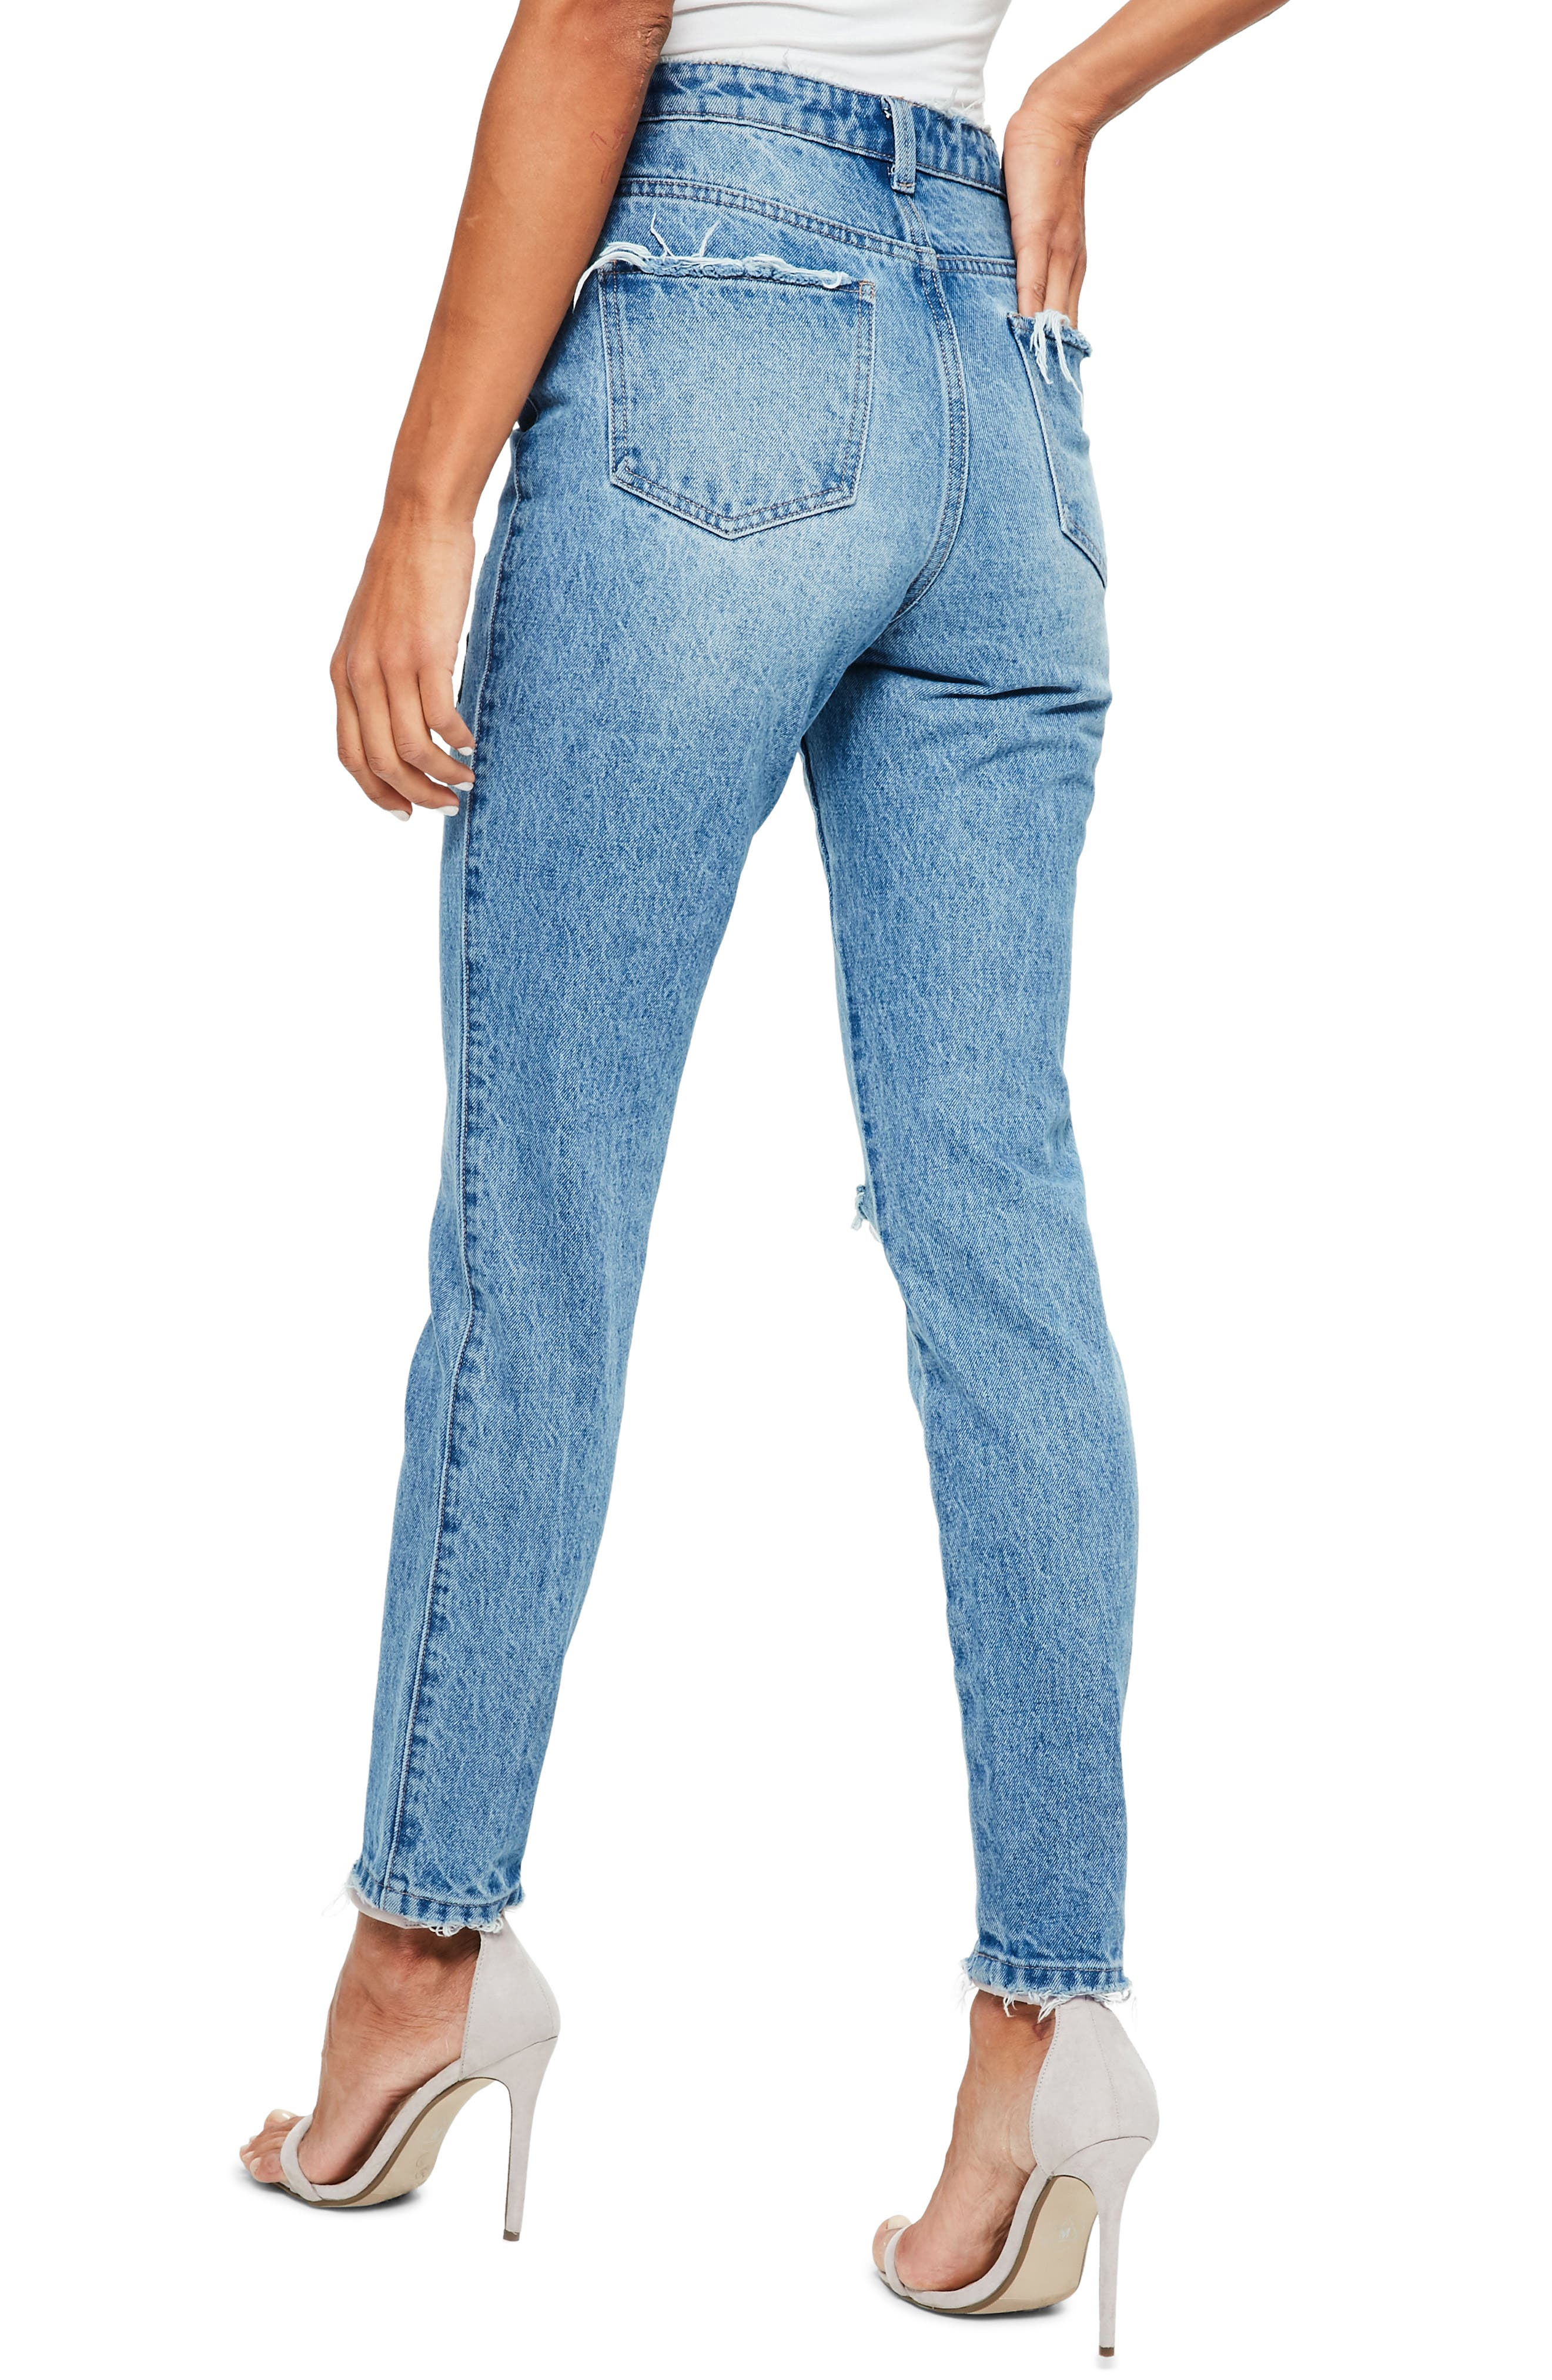 Riot Ripped High Waist Embroidered Jeans,                             Alternate thumbnail 2, color,                             400